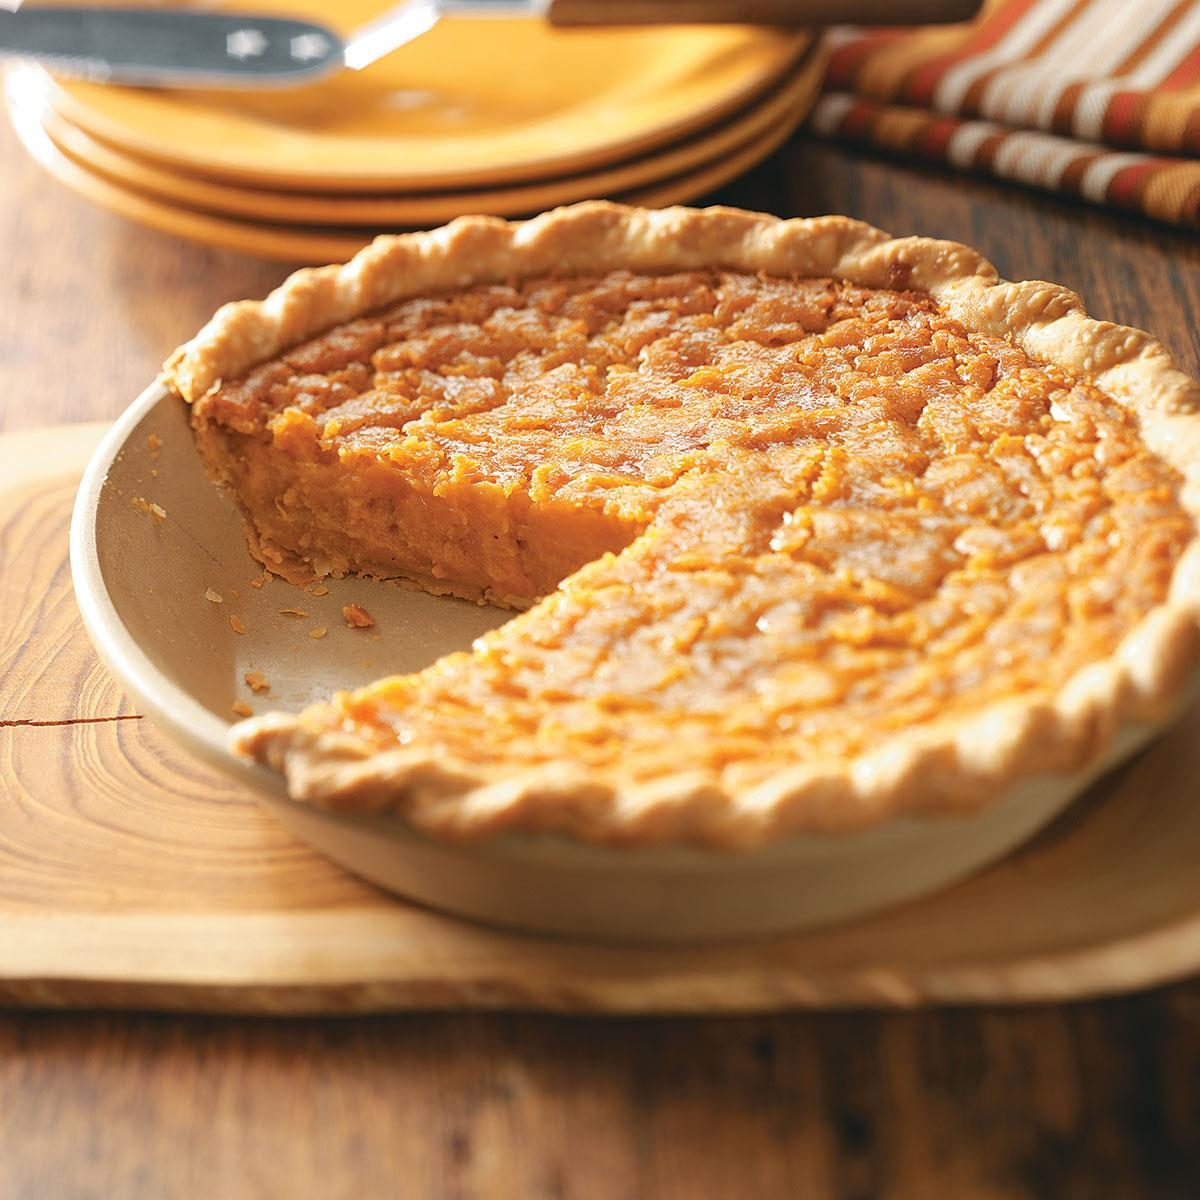 Southern Sweet Potato Pie Recipe | Taste of Home